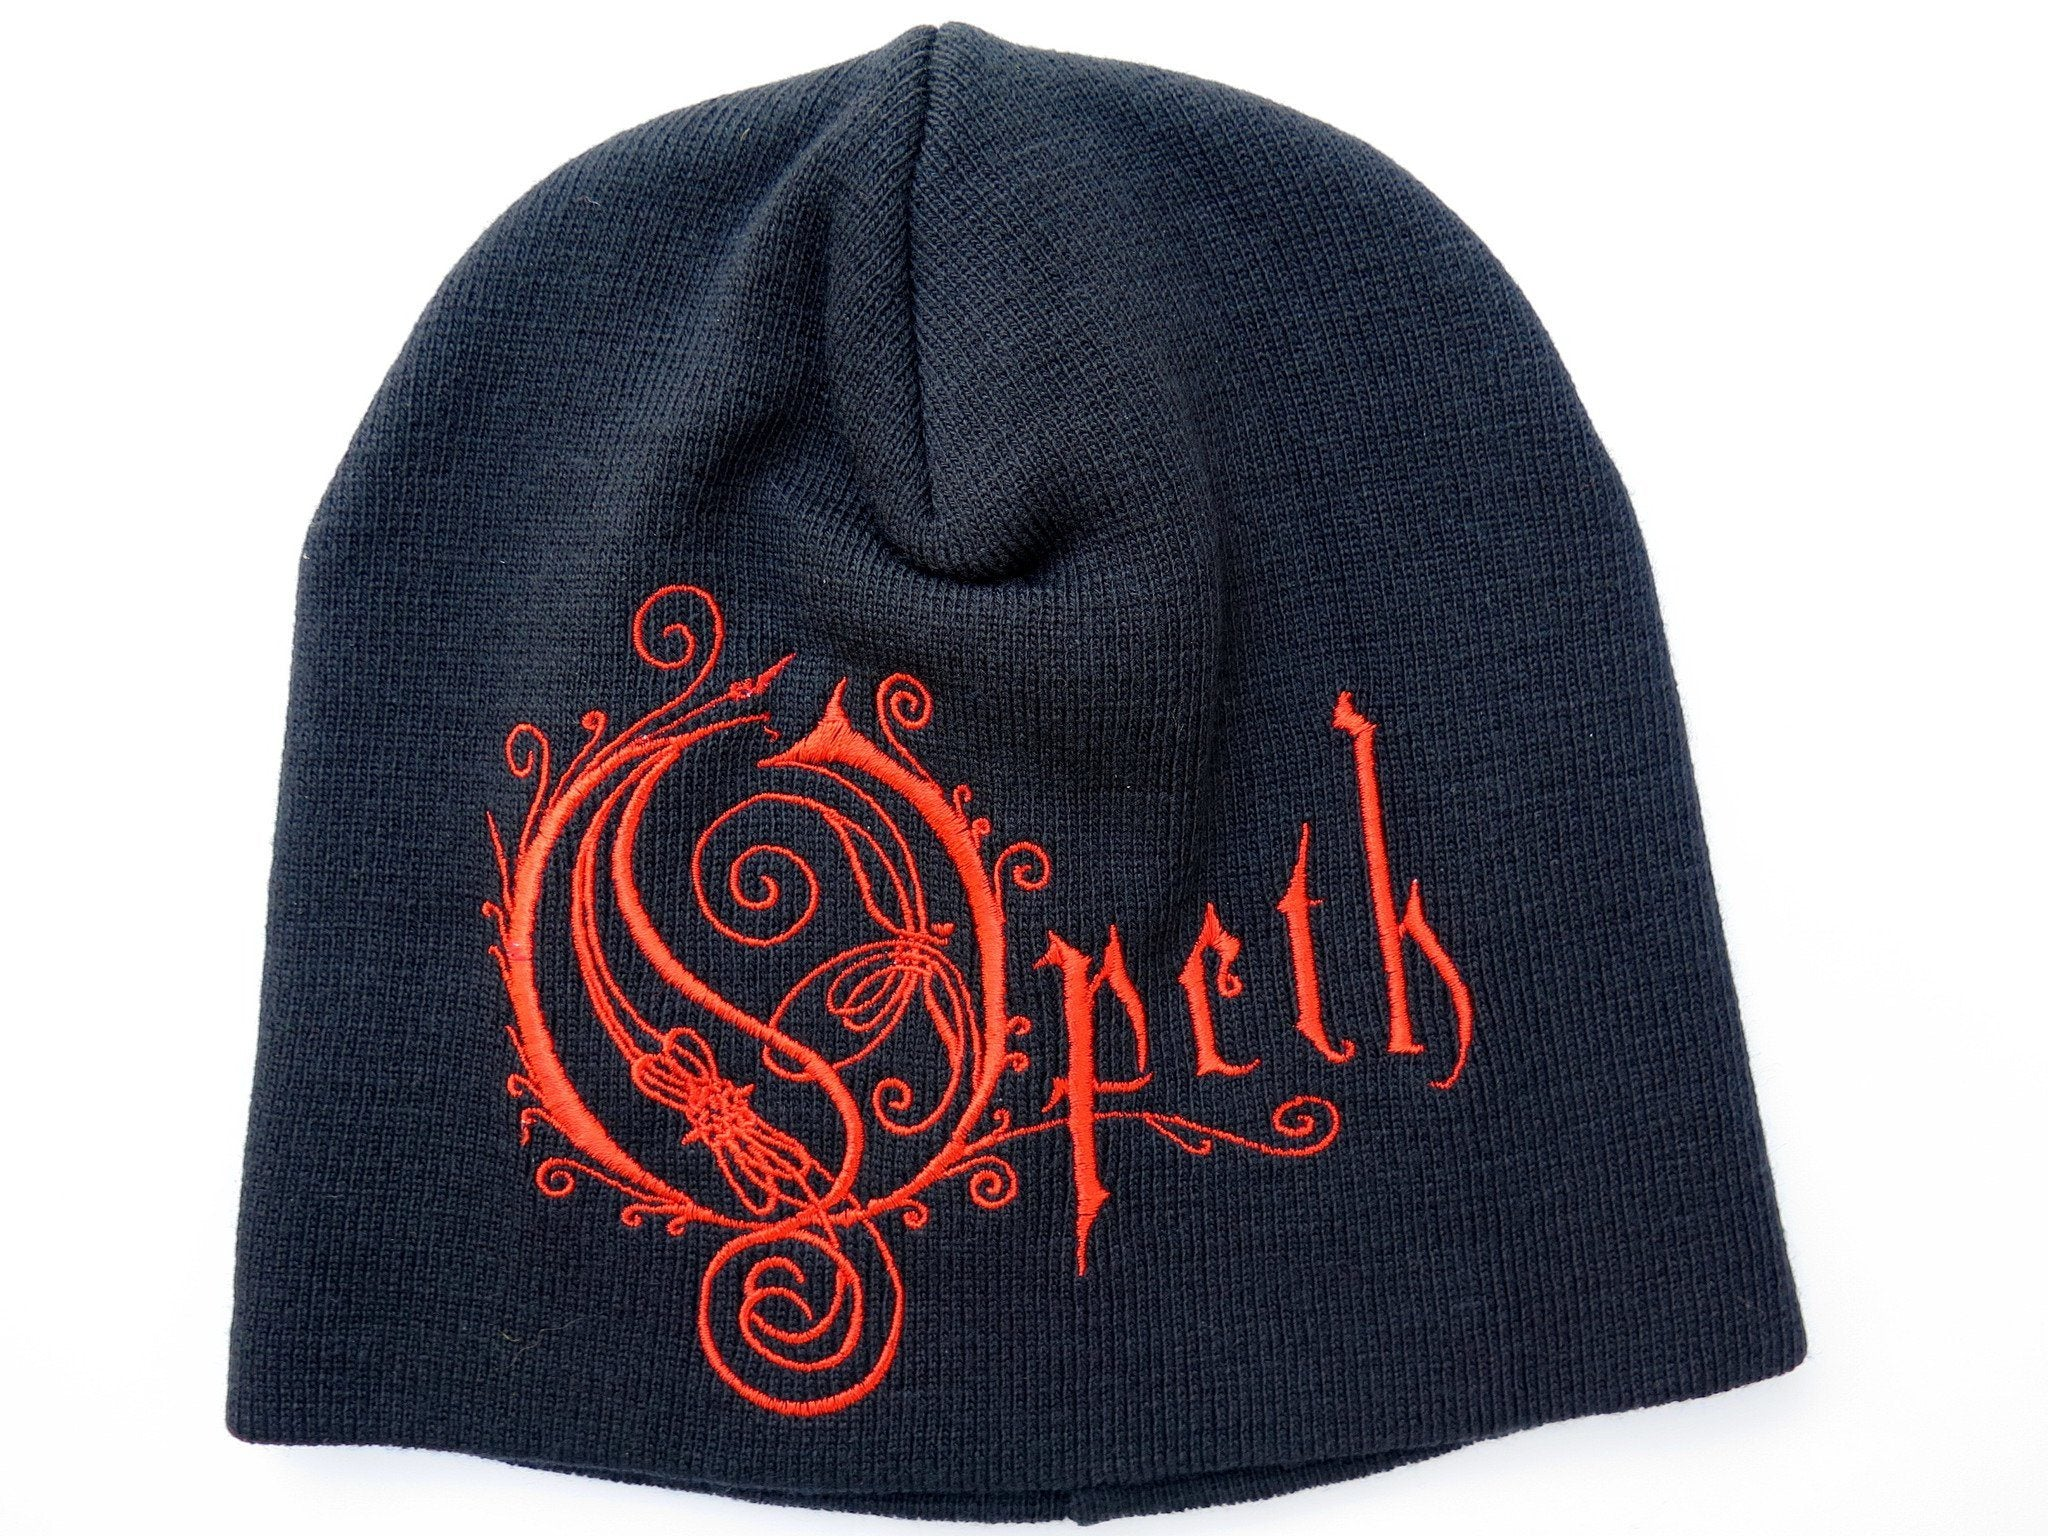 OPETH O Logo Winter Wool Beanie Hat BNWT - A Patch E Store